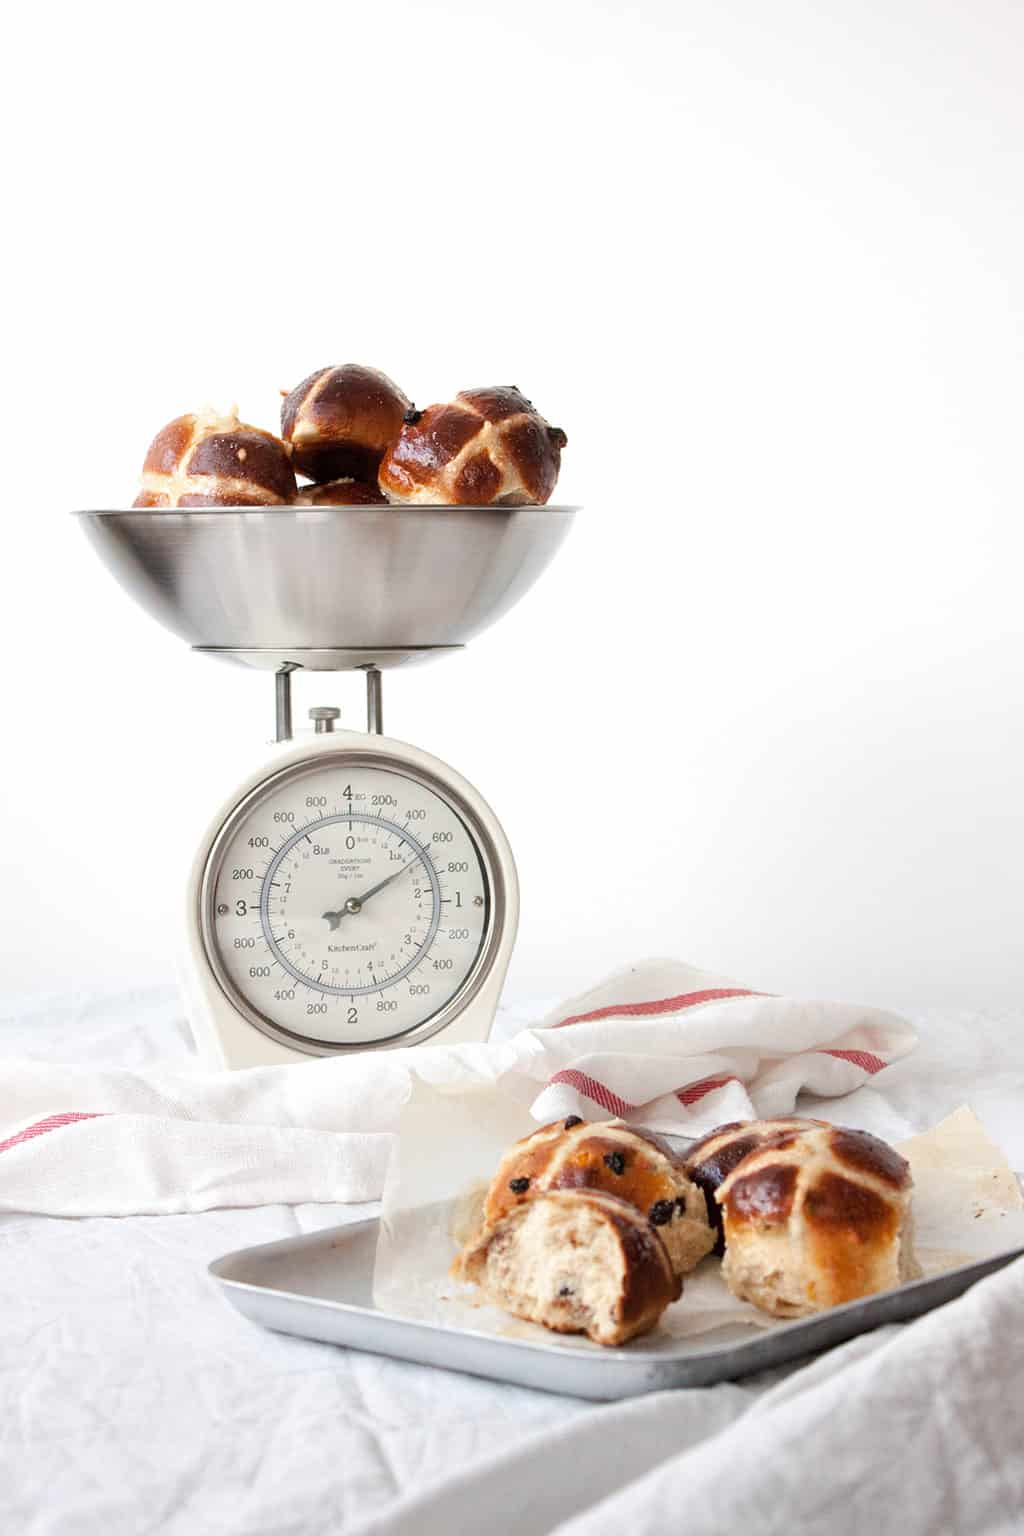 Hot Cross Buns receta